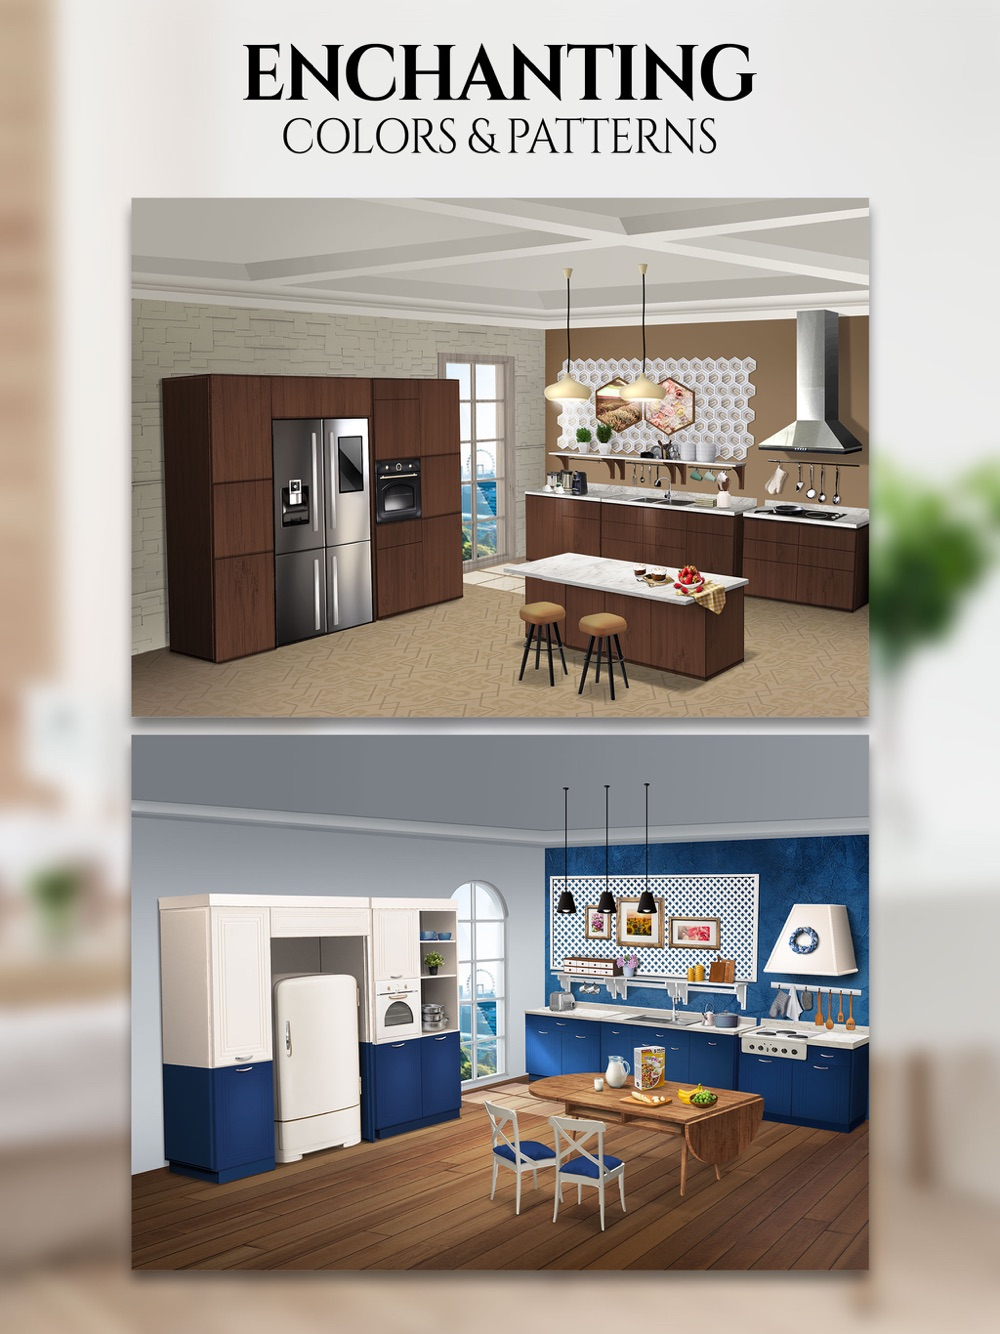 My Home Design   Modern City Free Download App for iPhone ...